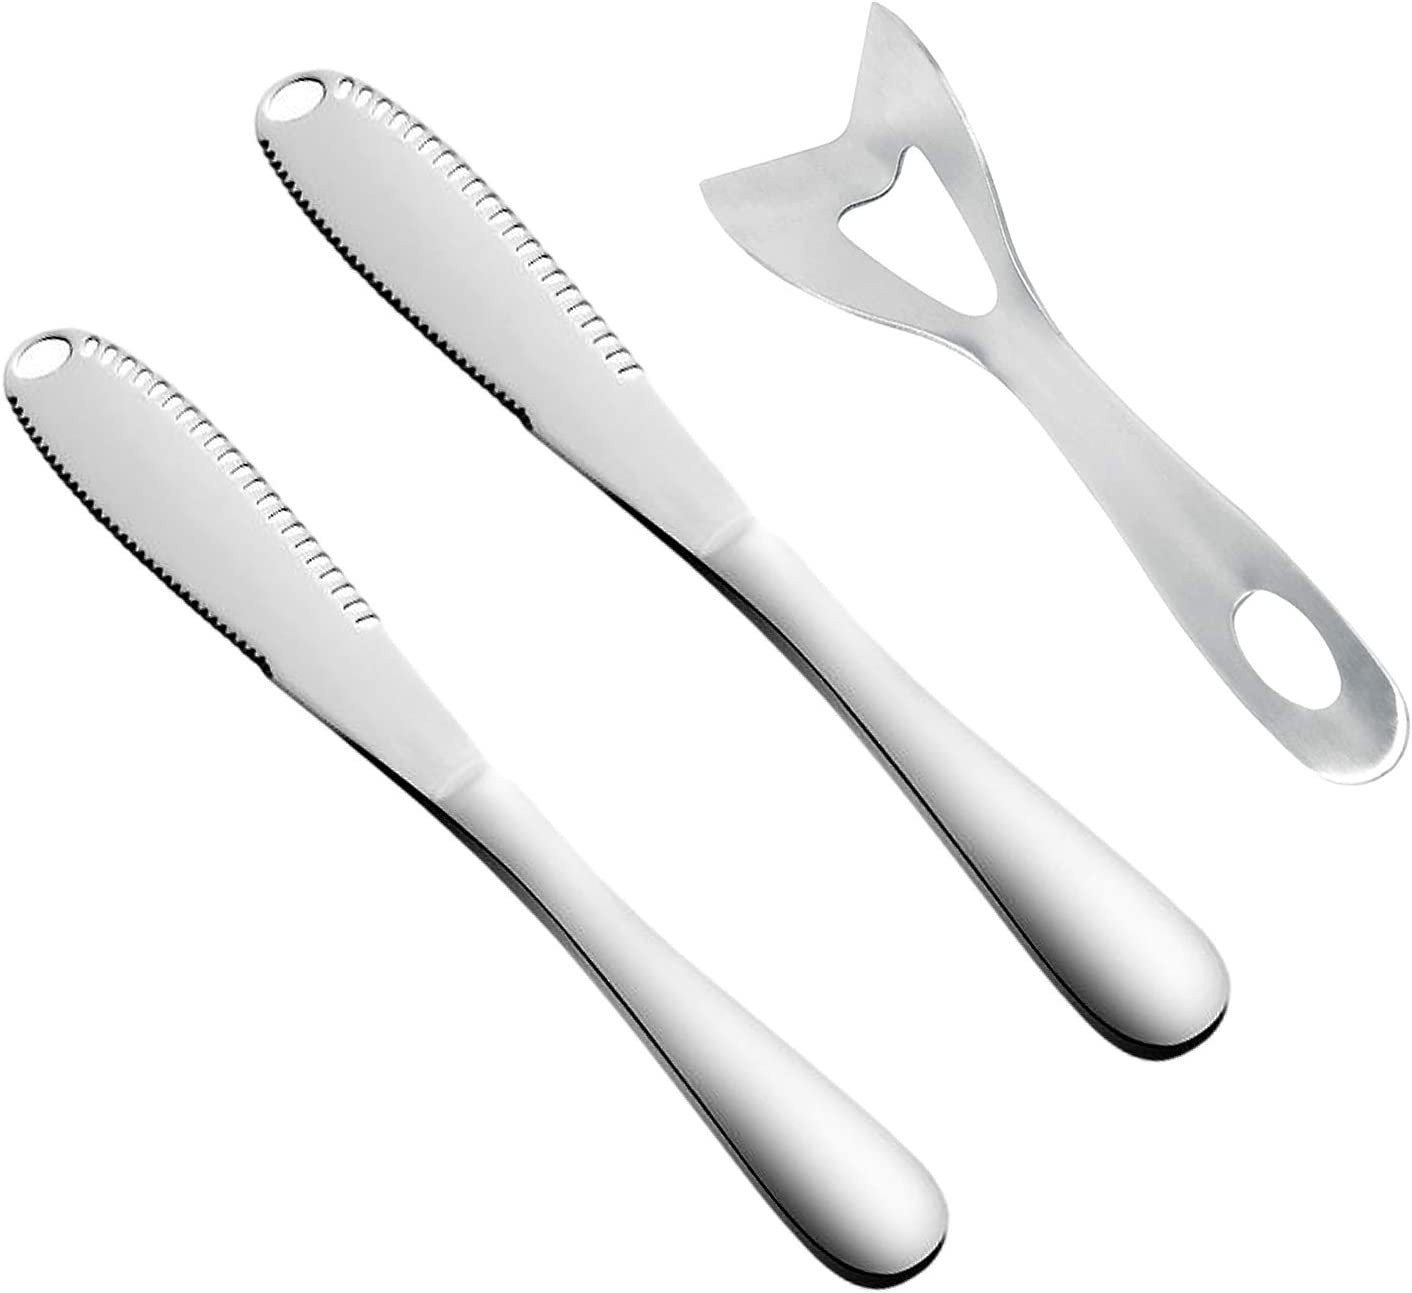 3Pcs Butter Knife Stainless Steel Spreader 3 1 Max 48% OFF in Mult Max 51% OFF